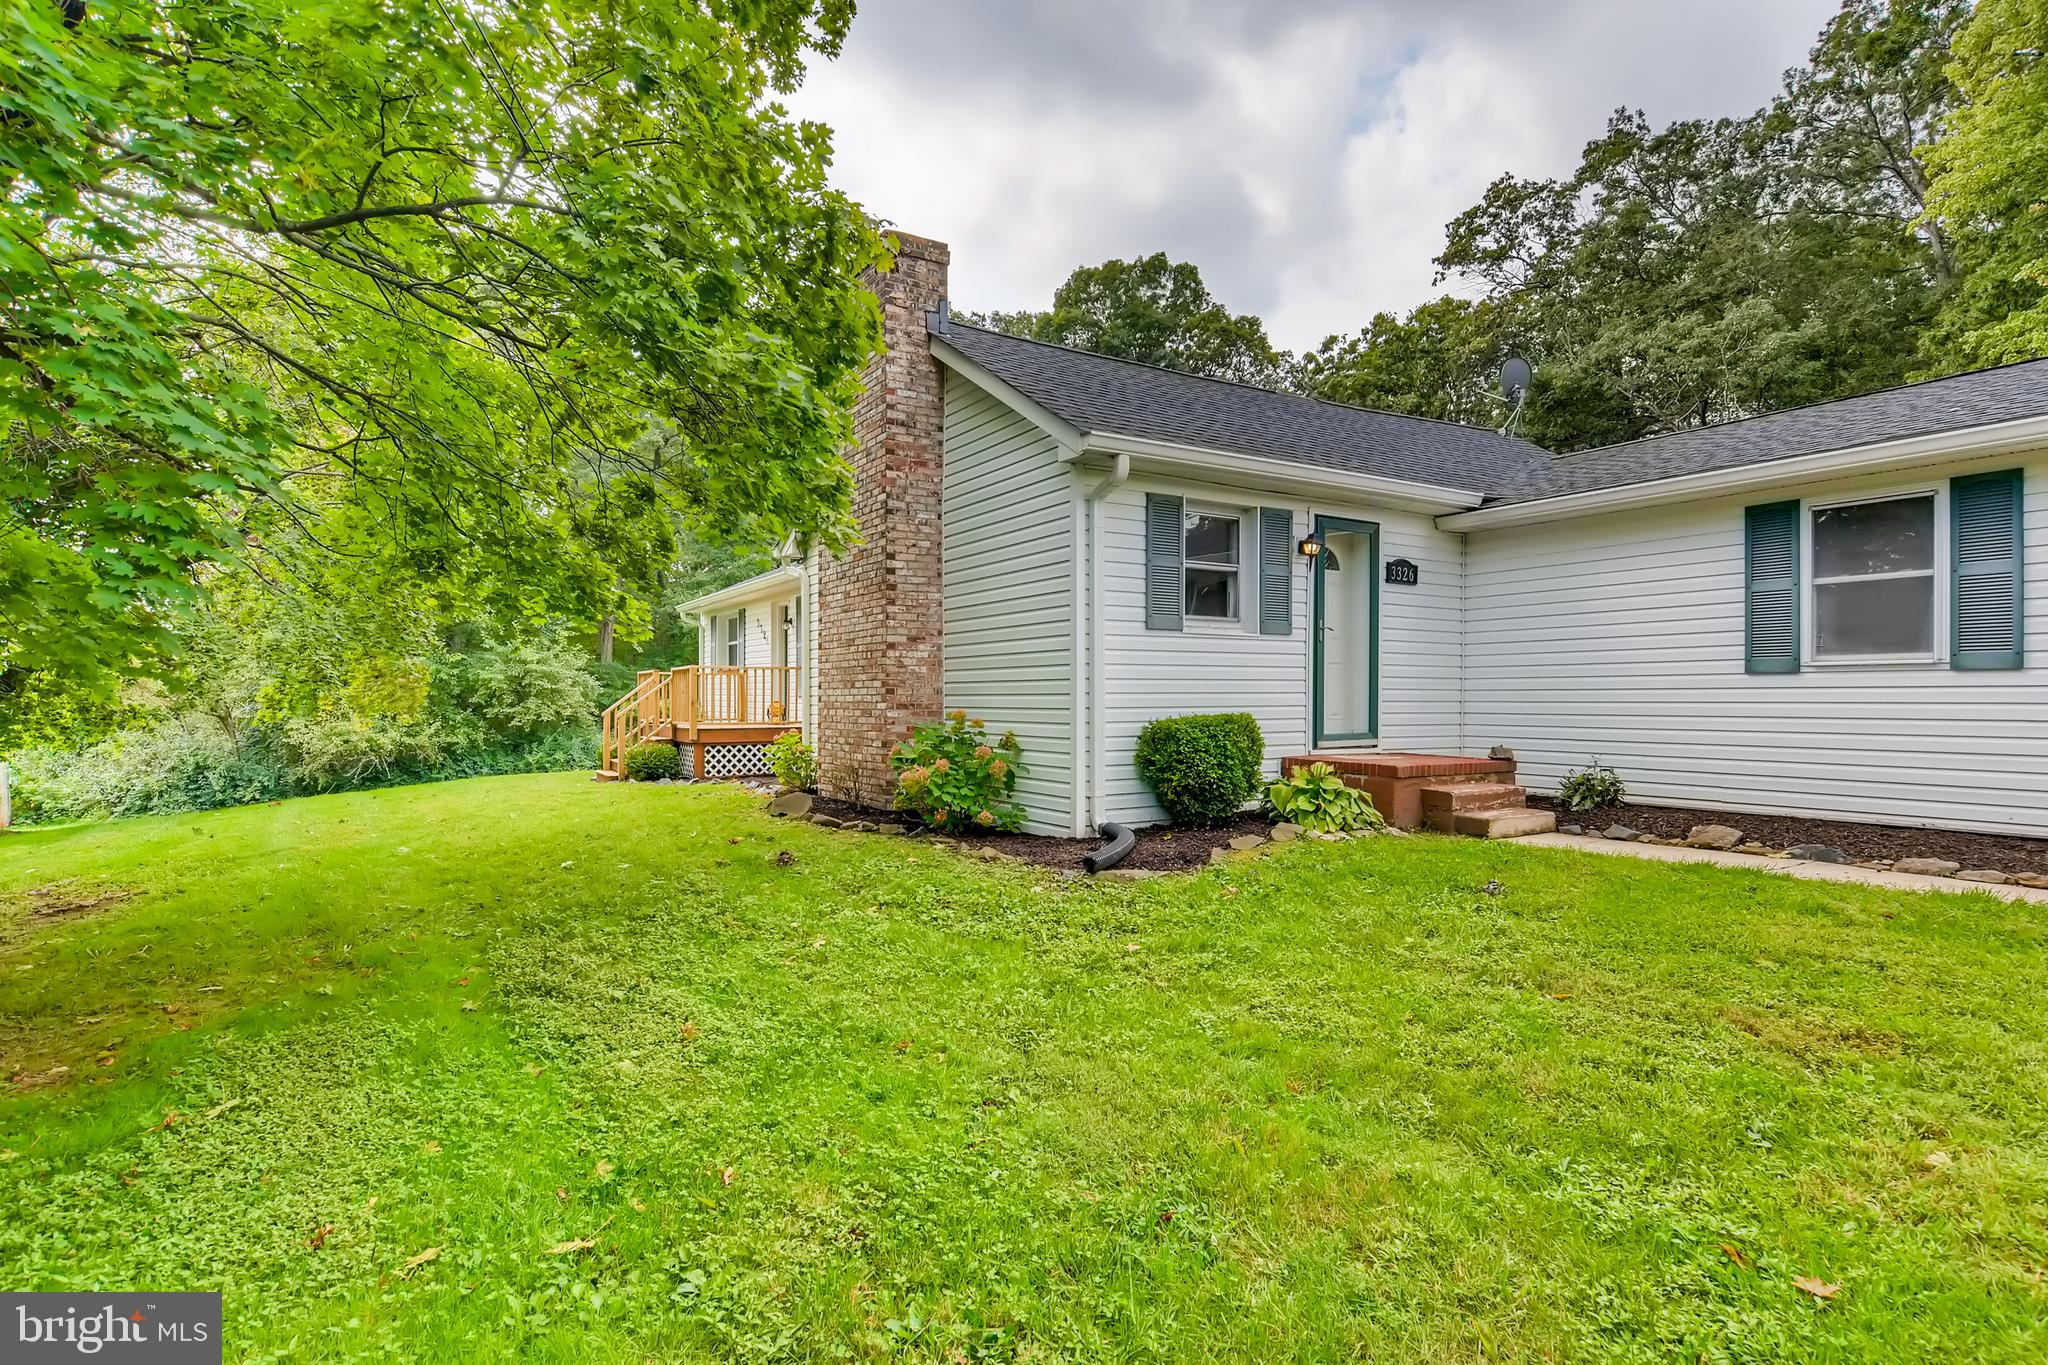 Beautiful 3 bedroom 2 bath rancher on a large .8 acre lot ready for you to call home.  Nicely update